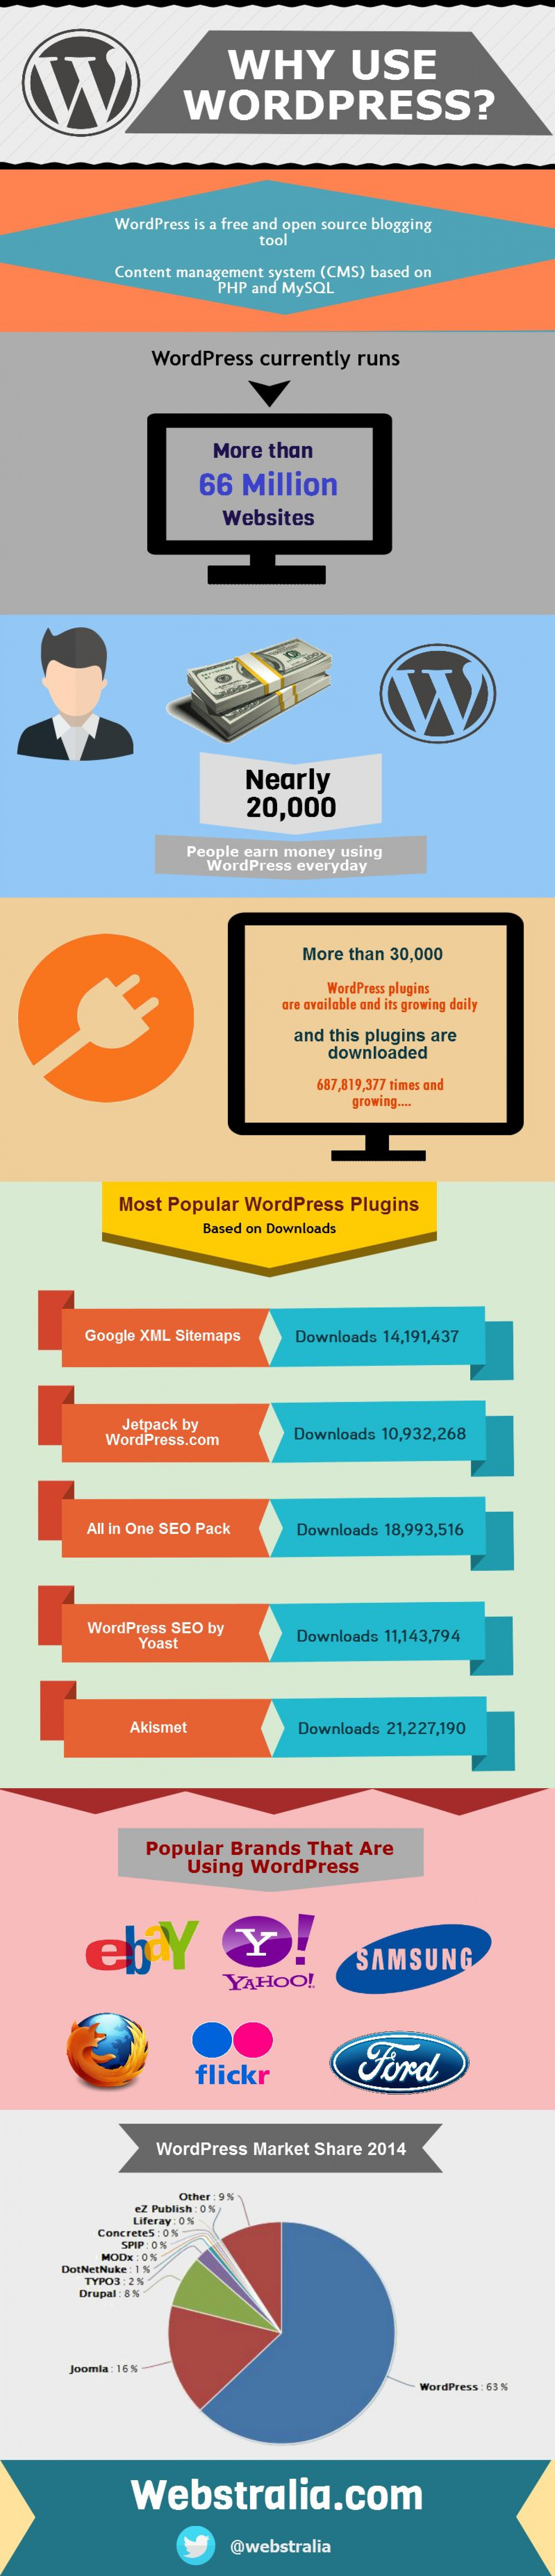 Why Use Wordpress? Infographic